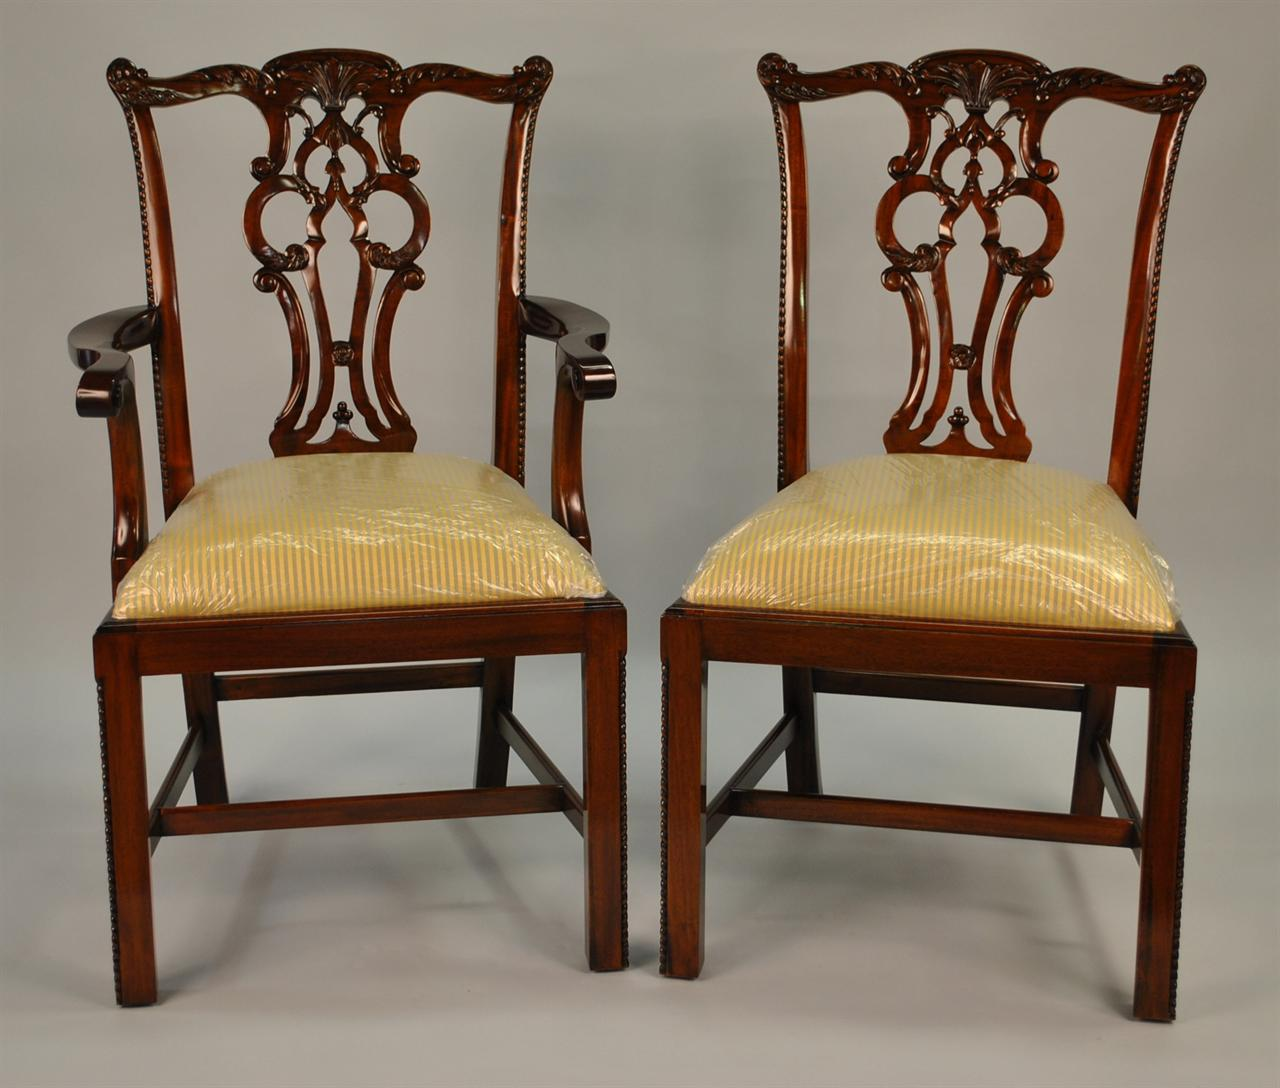 Chippendale Furniture: Chippendale Solid Mahogany Straight Leg Dining Room Chairs